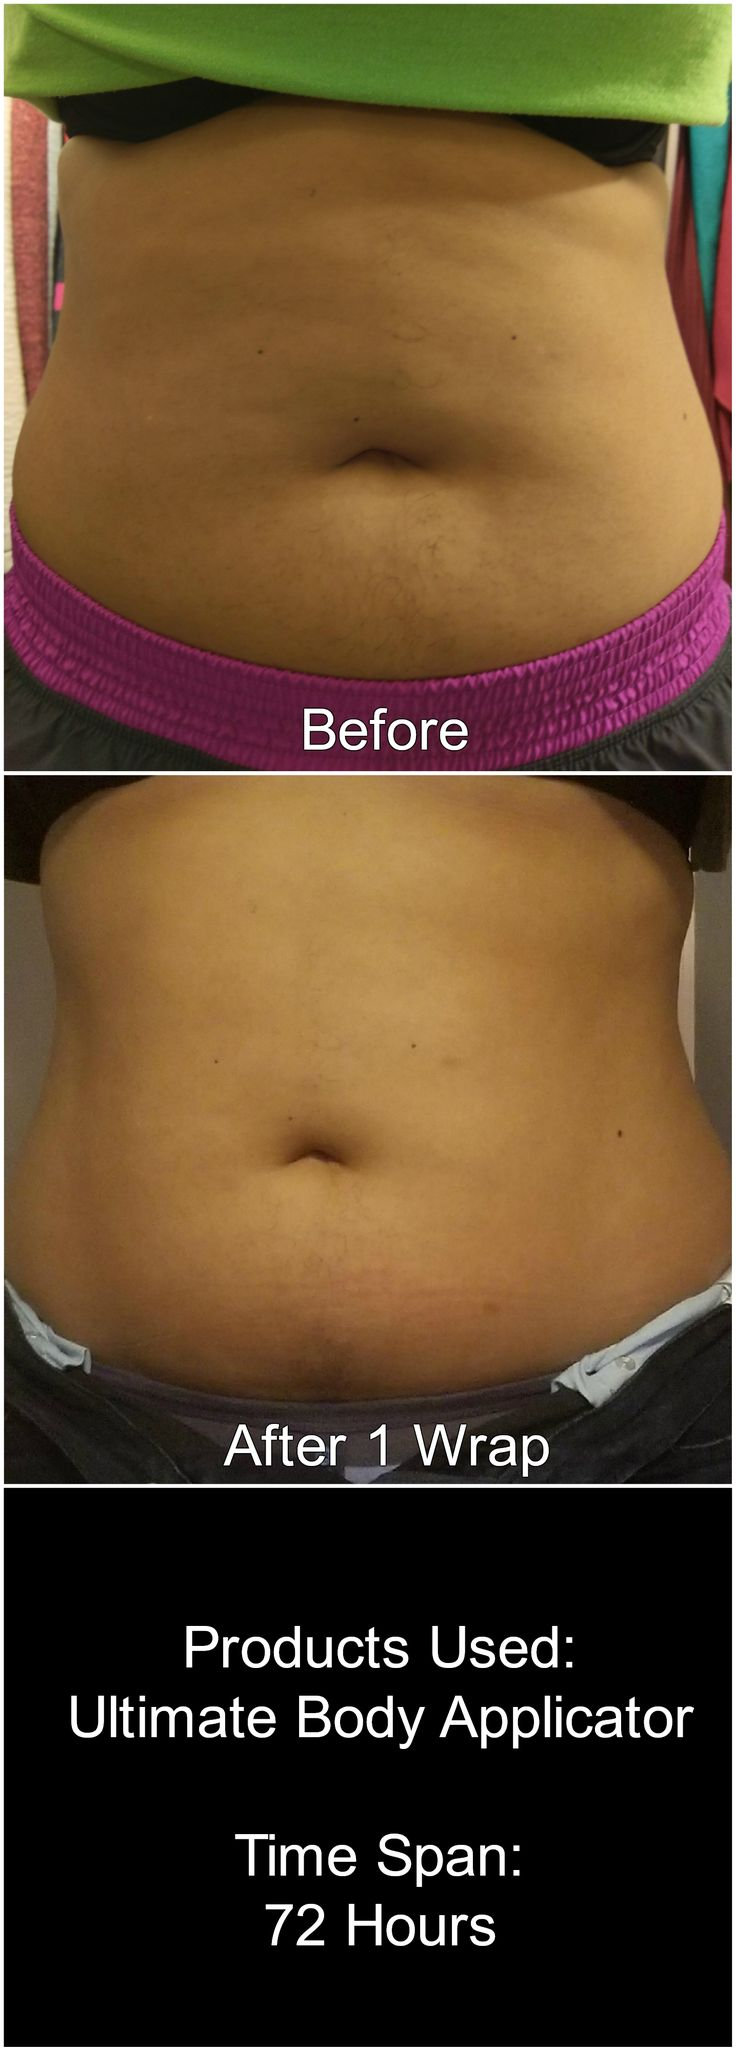 Ultimate Body Applicator results after just 1 wrap!  http://natalielima.itworks.com/shop/product/111 Contact me for more details: nl.natalielima@gmail.com